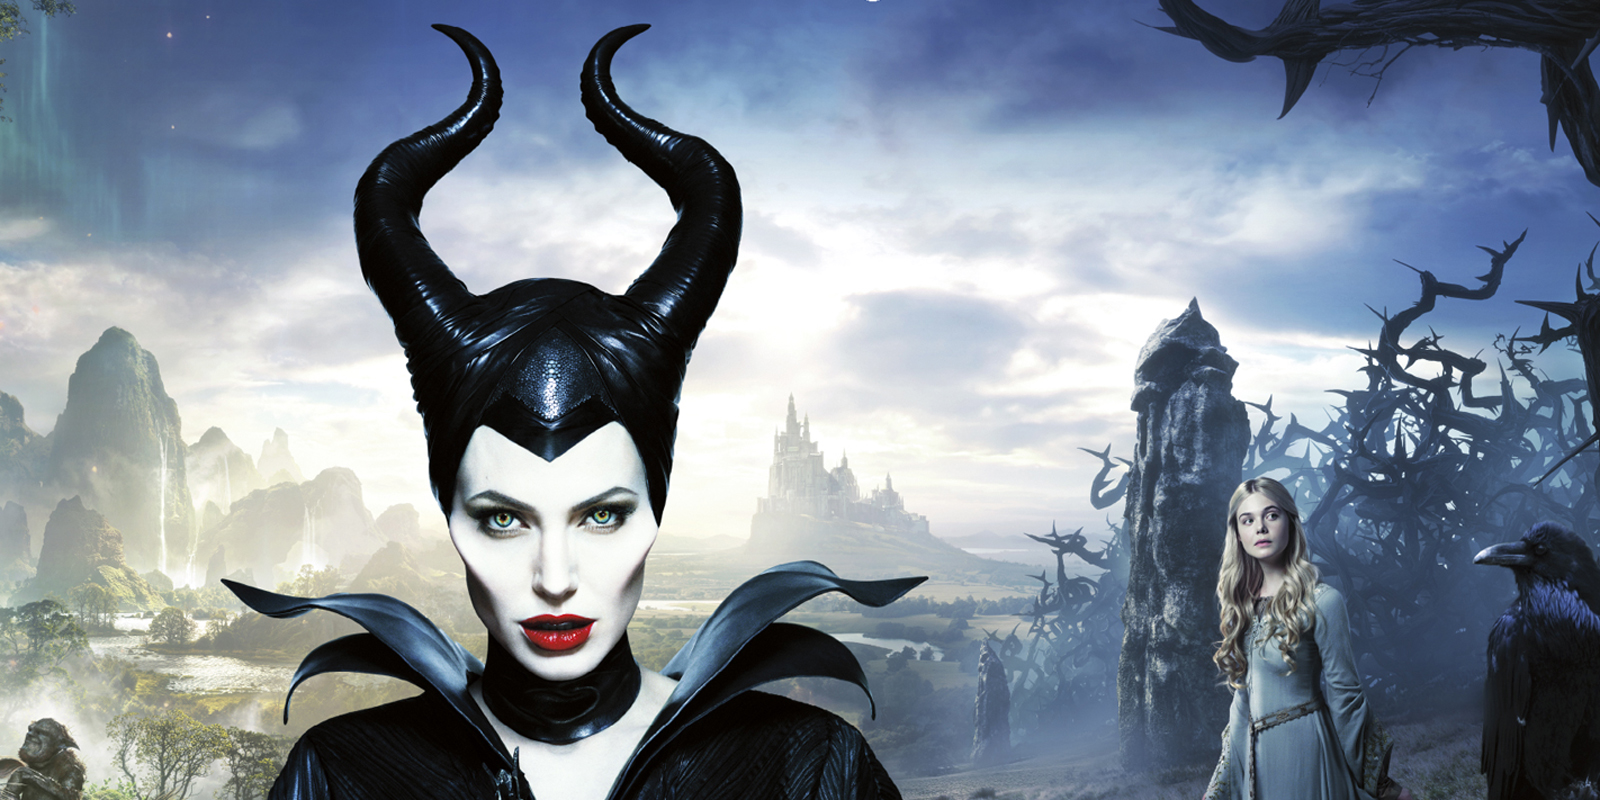 Get the look: Maleficent